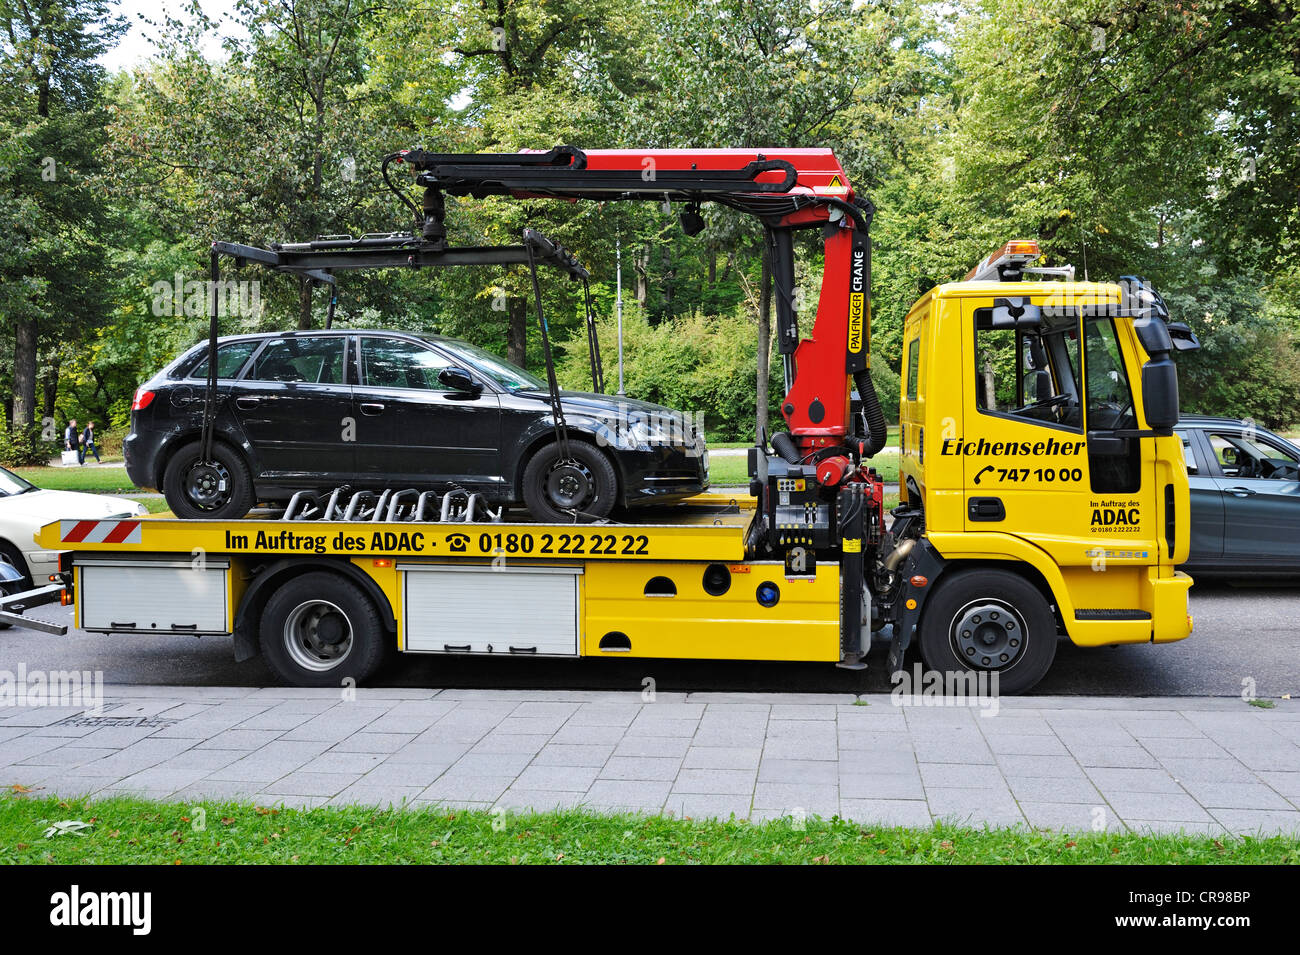 Car on a tow truck, Munich, Bavaria, Germany, Europe - Stock Image